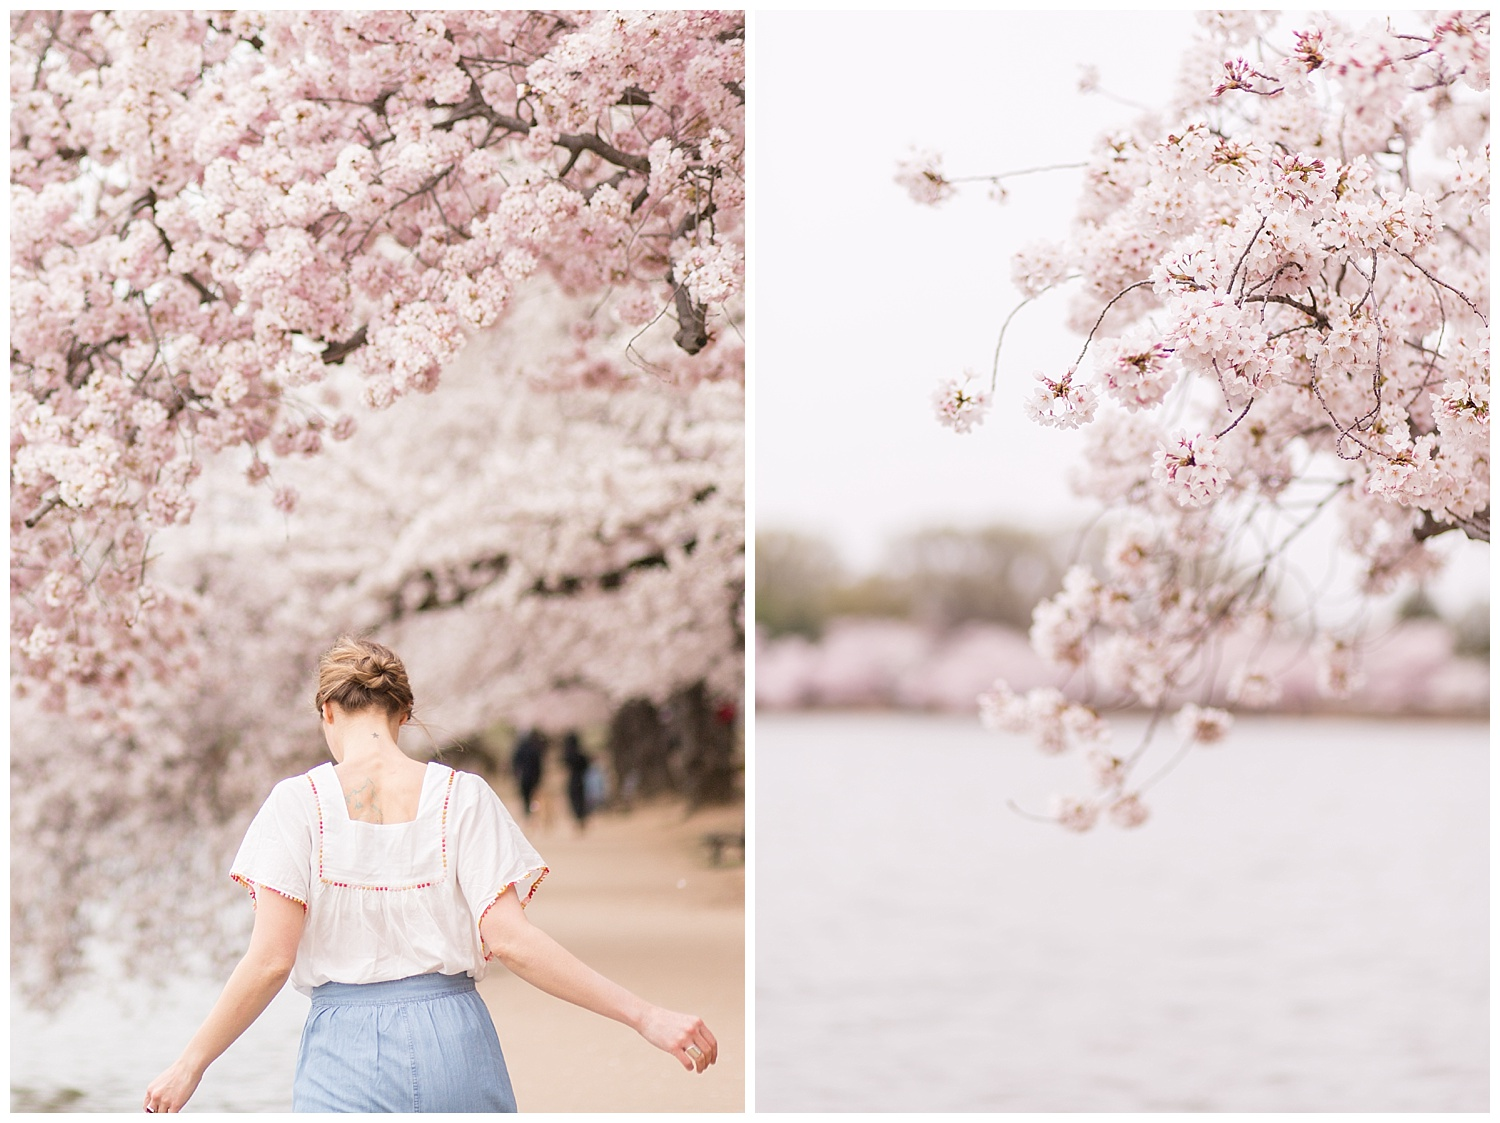 emily-belson-photography-cherry-blossom-dc-jessica-09.jpg